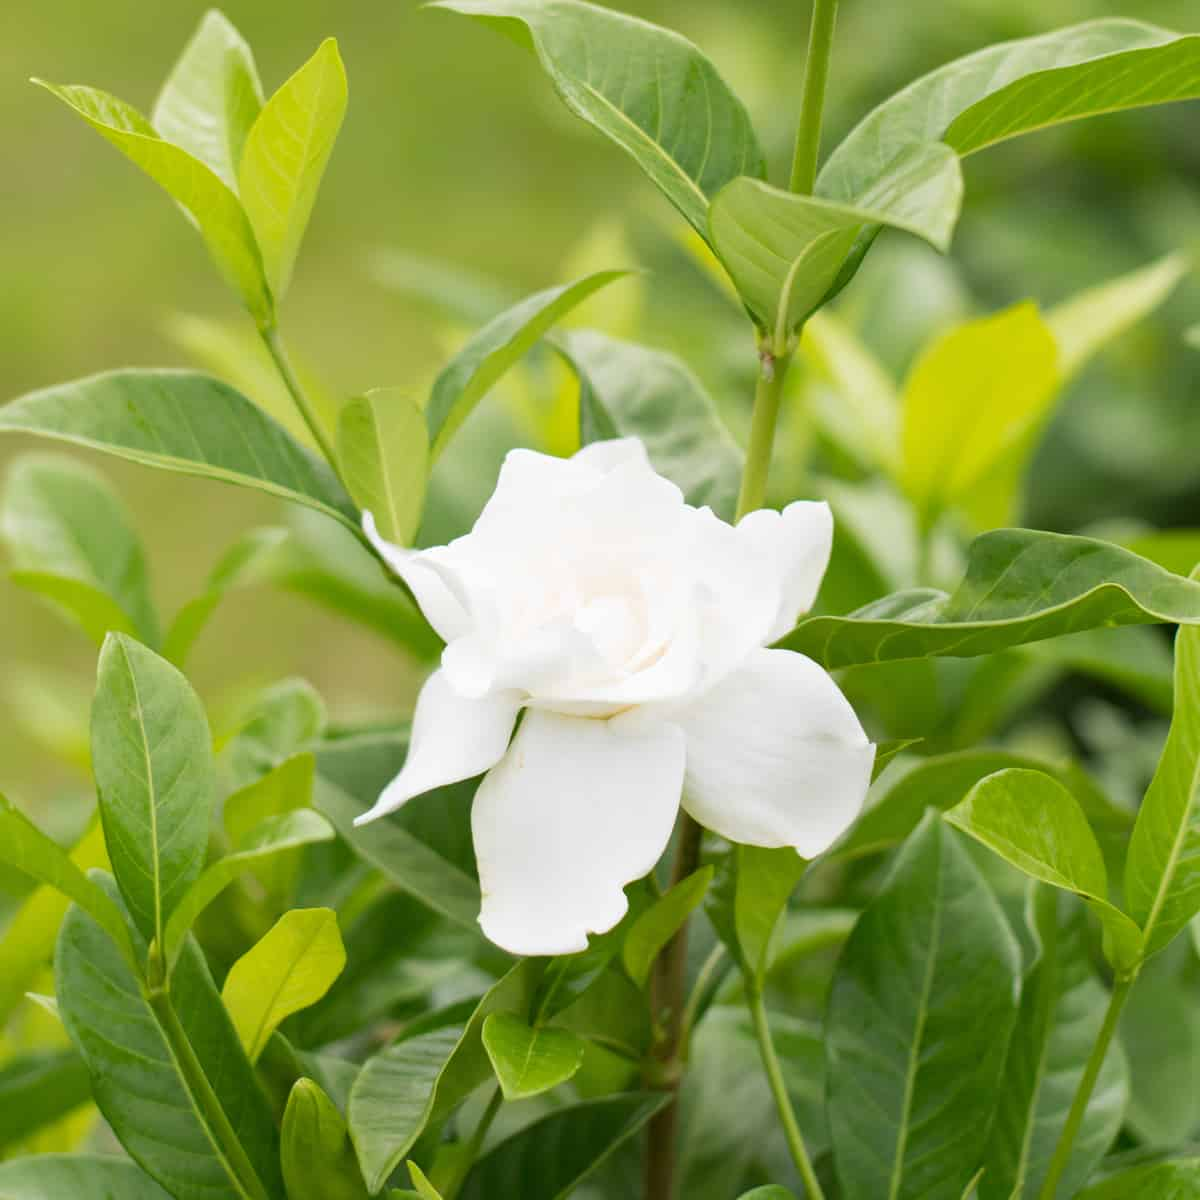 gardenias need a lot of sun whether you plant them indoors or out